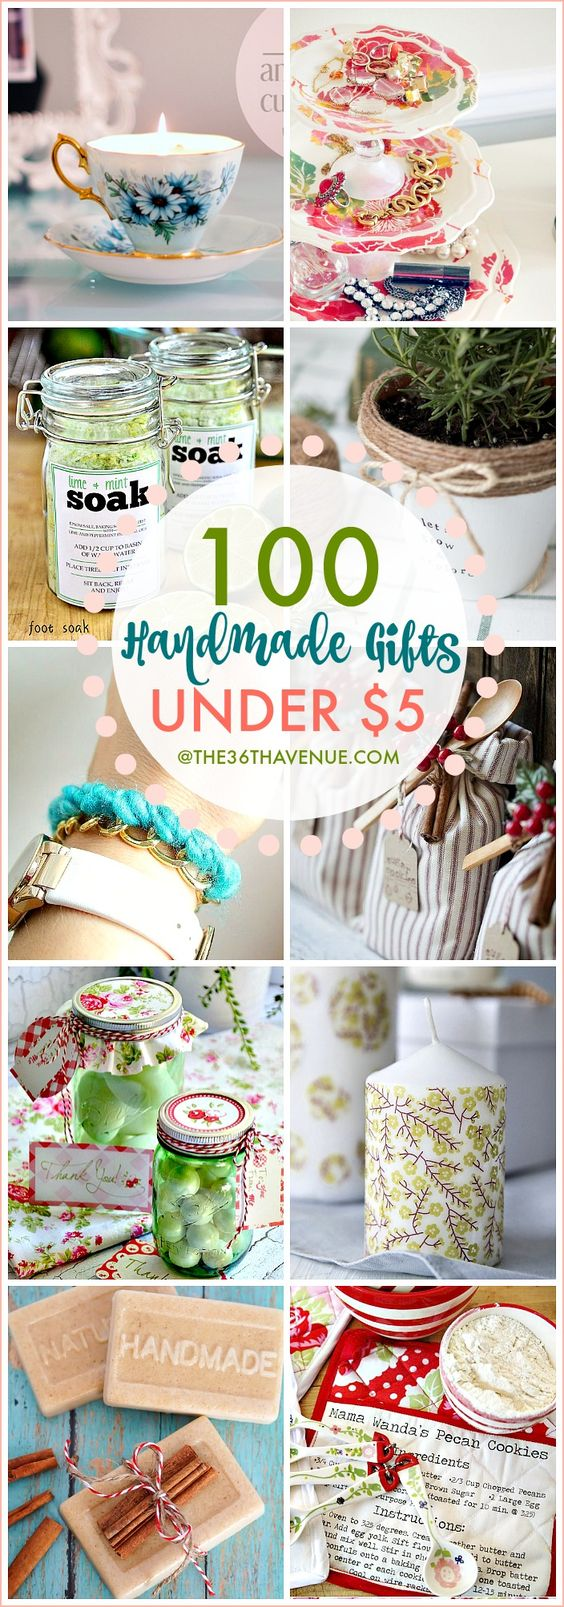 100 Handmade Gifts Under Five Dollars Birthdays About Christmas And Handma